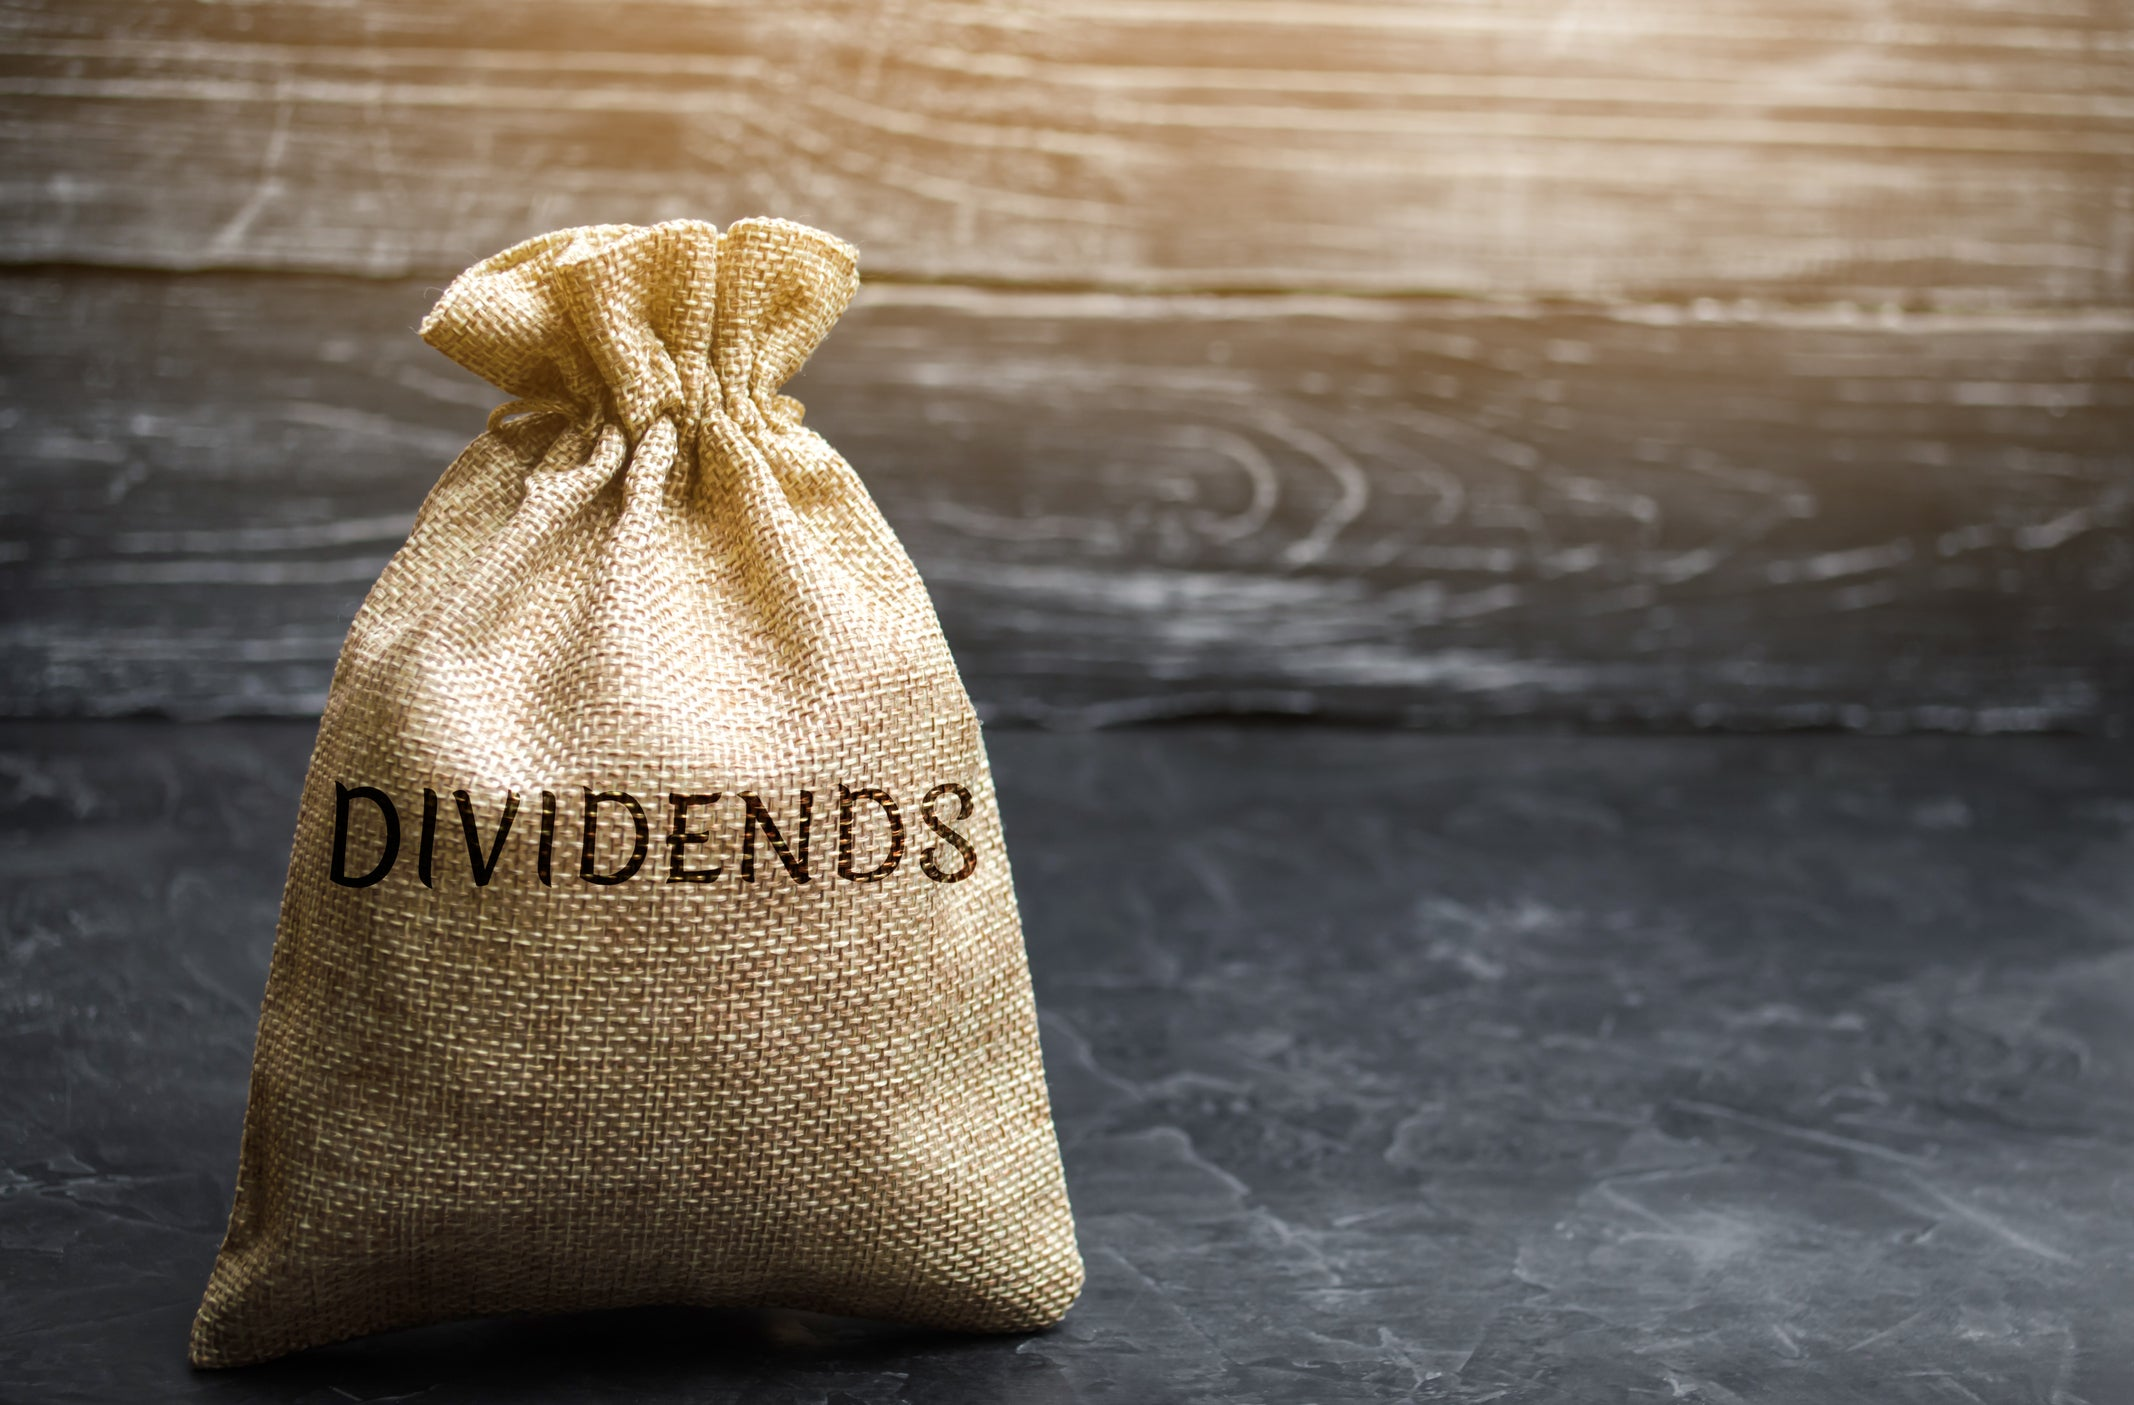 2 Cheap Dividend Stocks You Can Buy Right Now